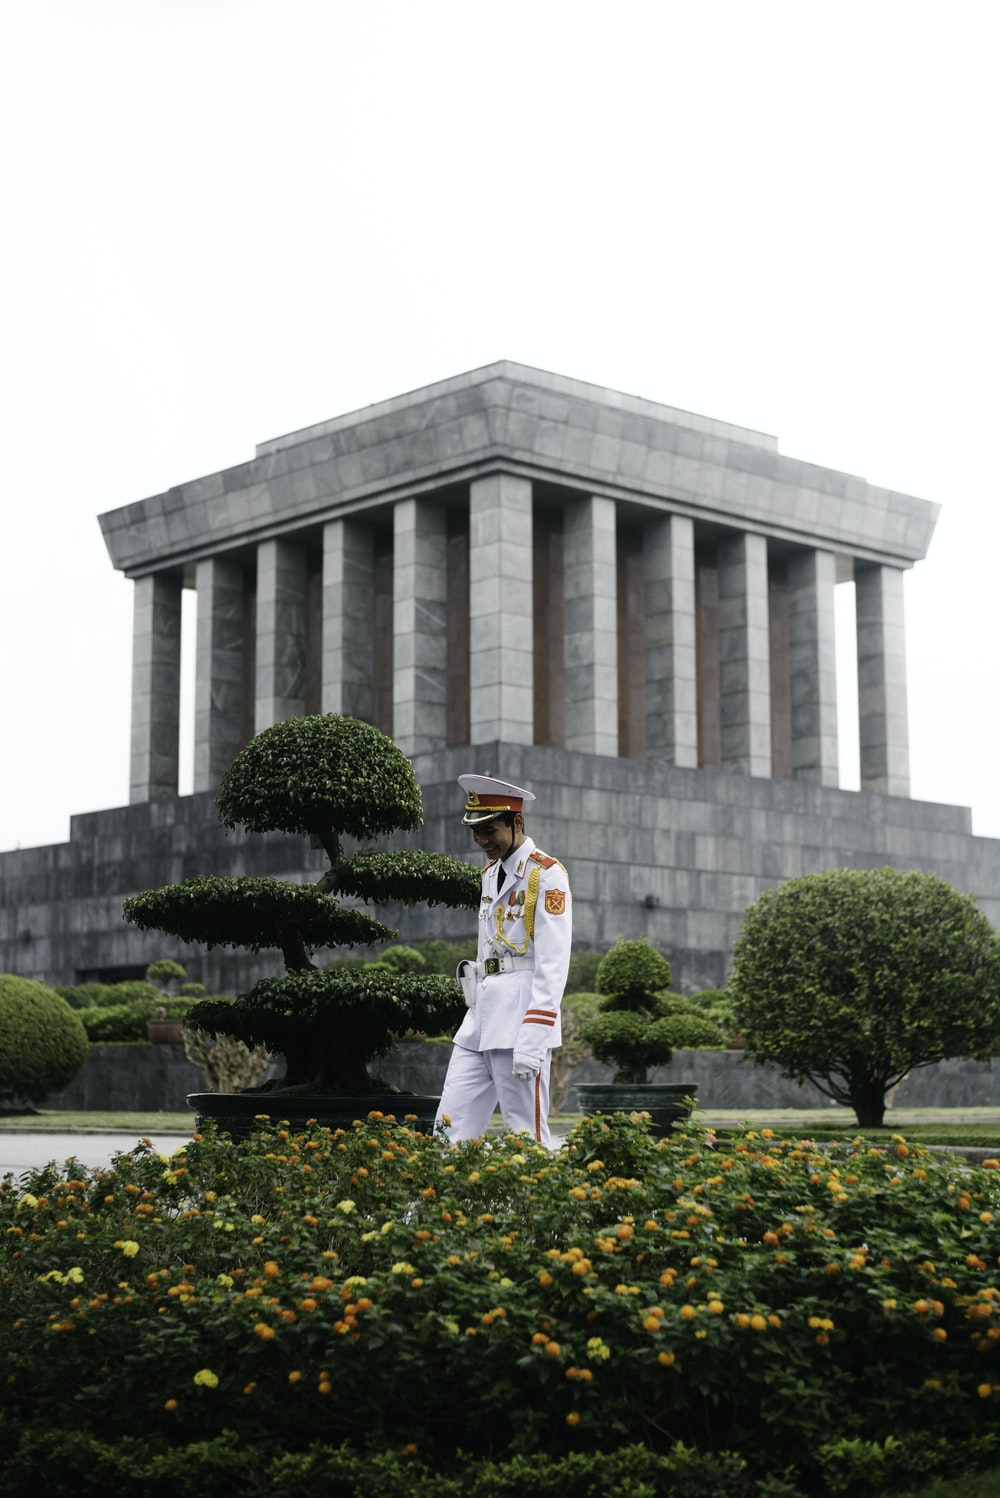 man in uniform stands beside yellow flowering plant in front of concrete museum